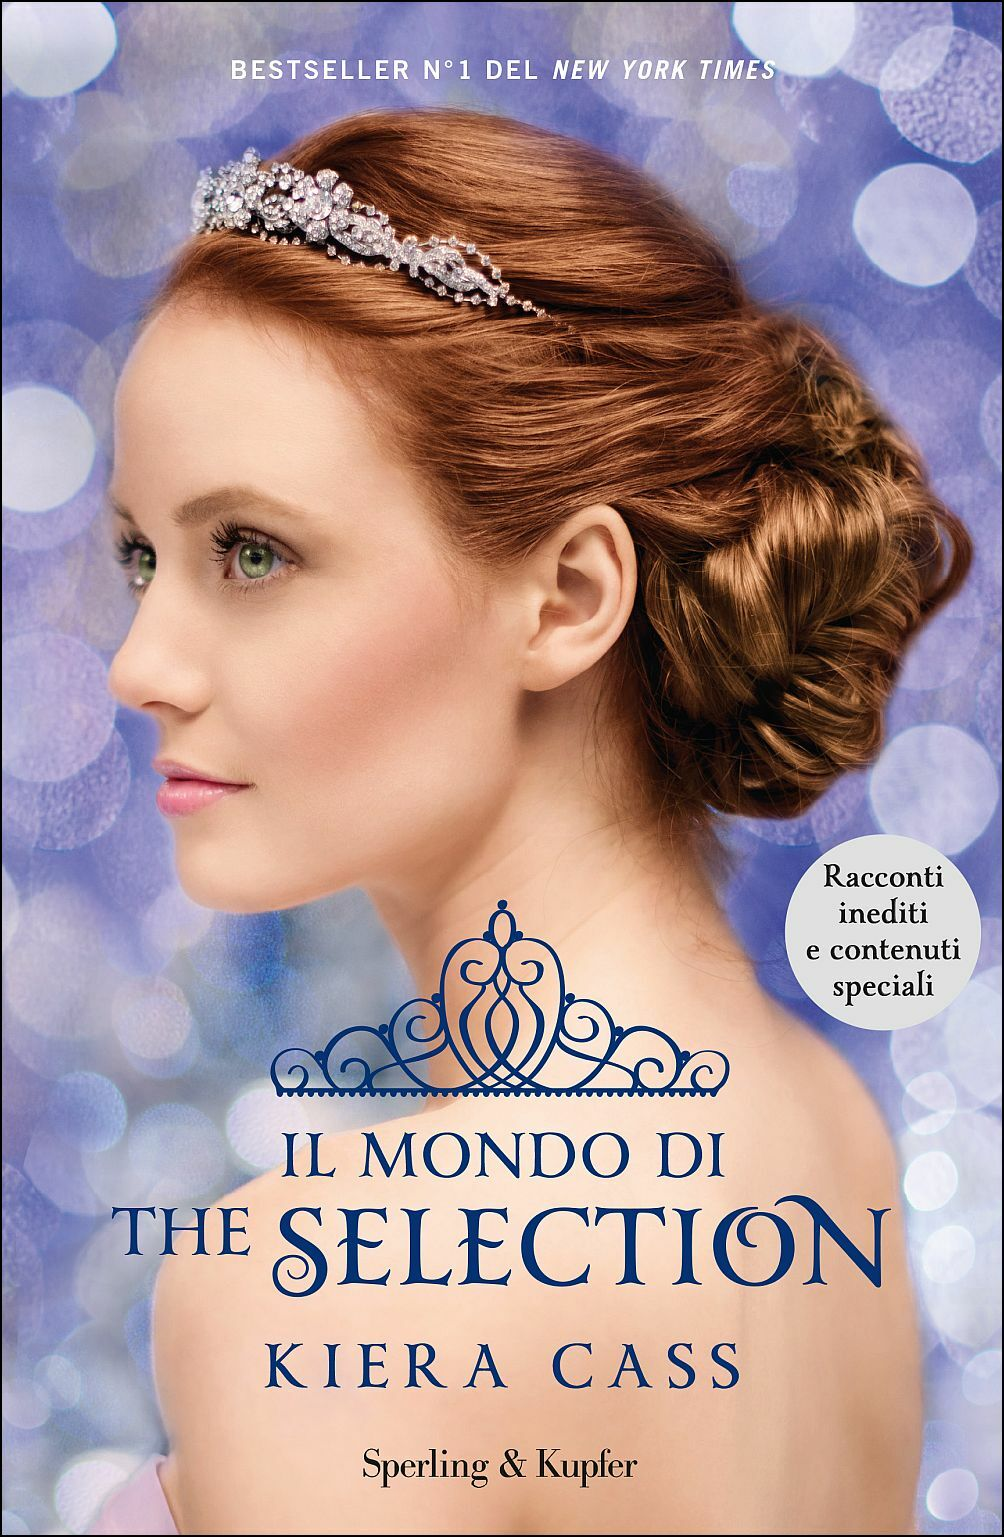 Il mondo di The selection